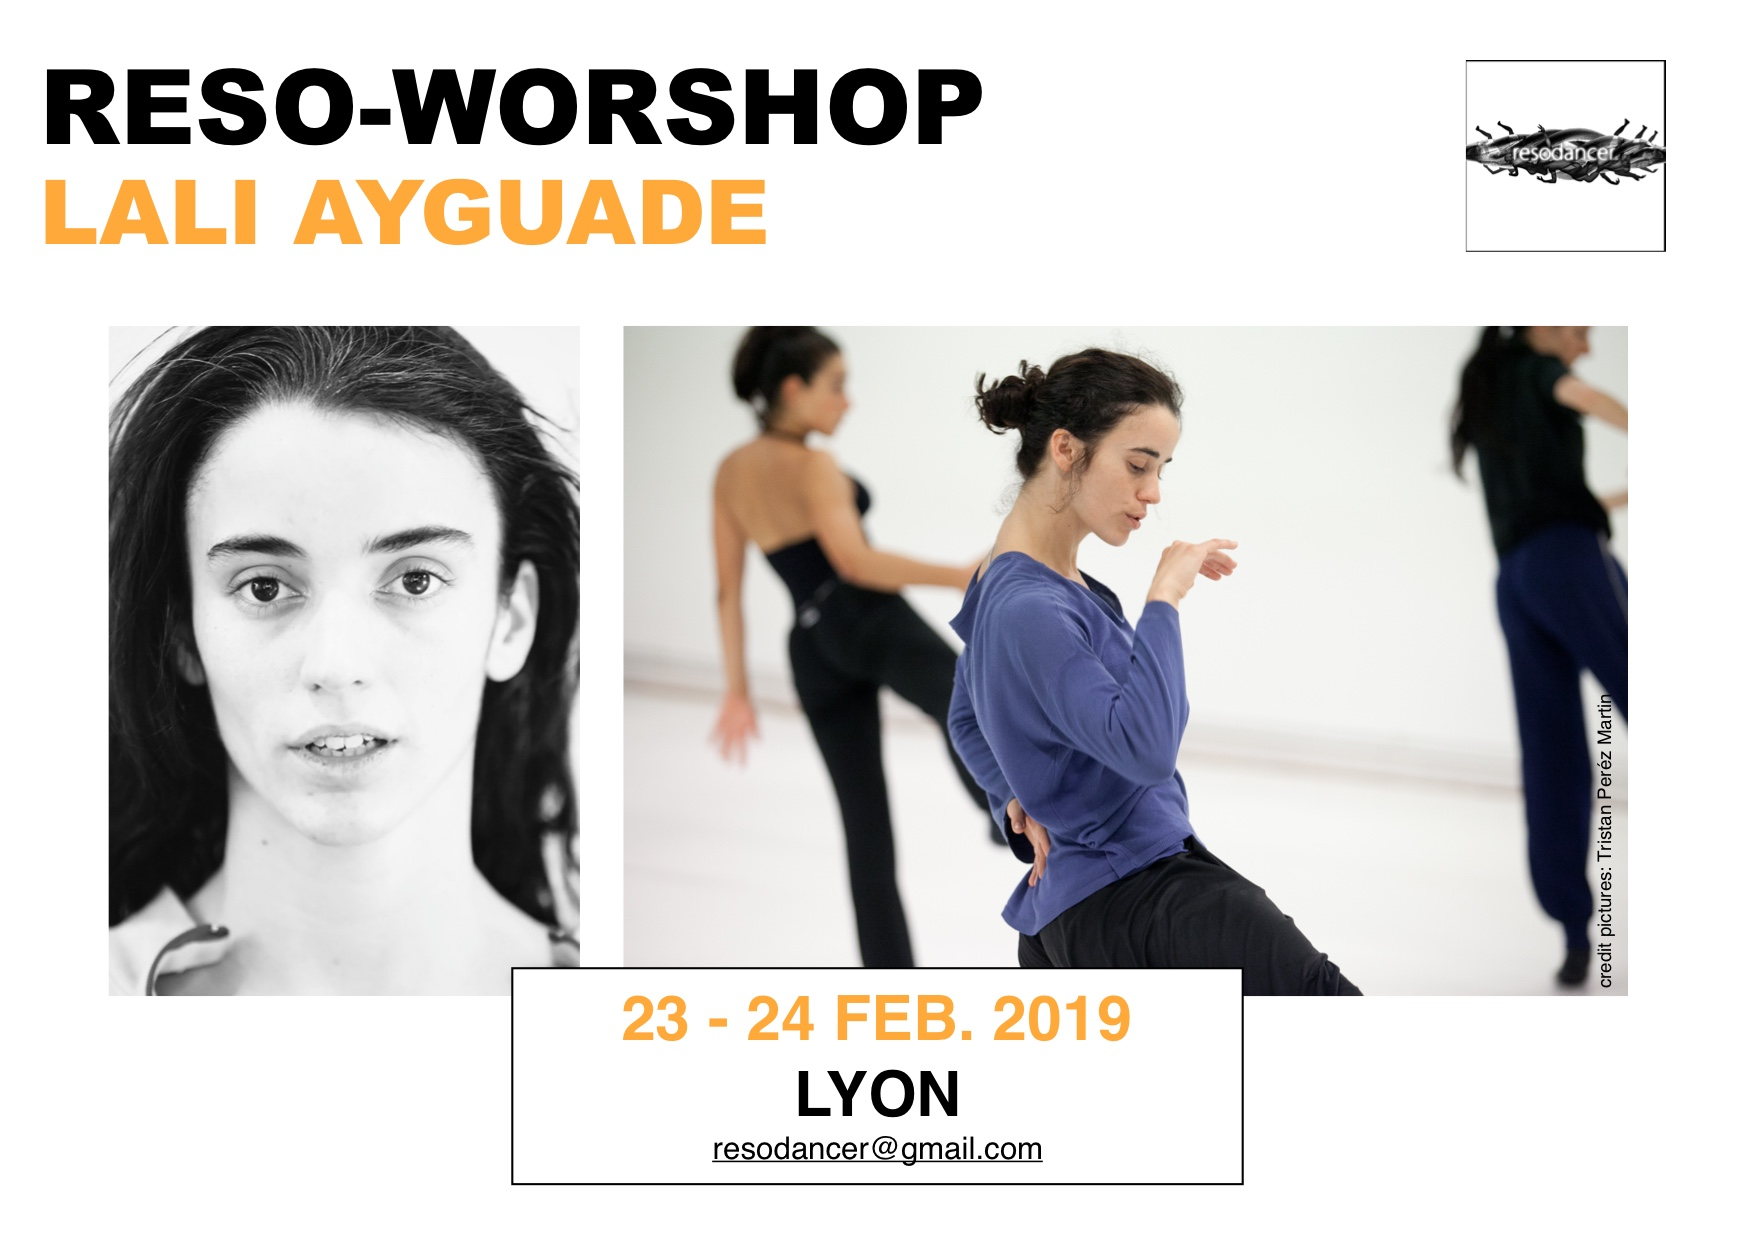 Reso-Workshop Lali